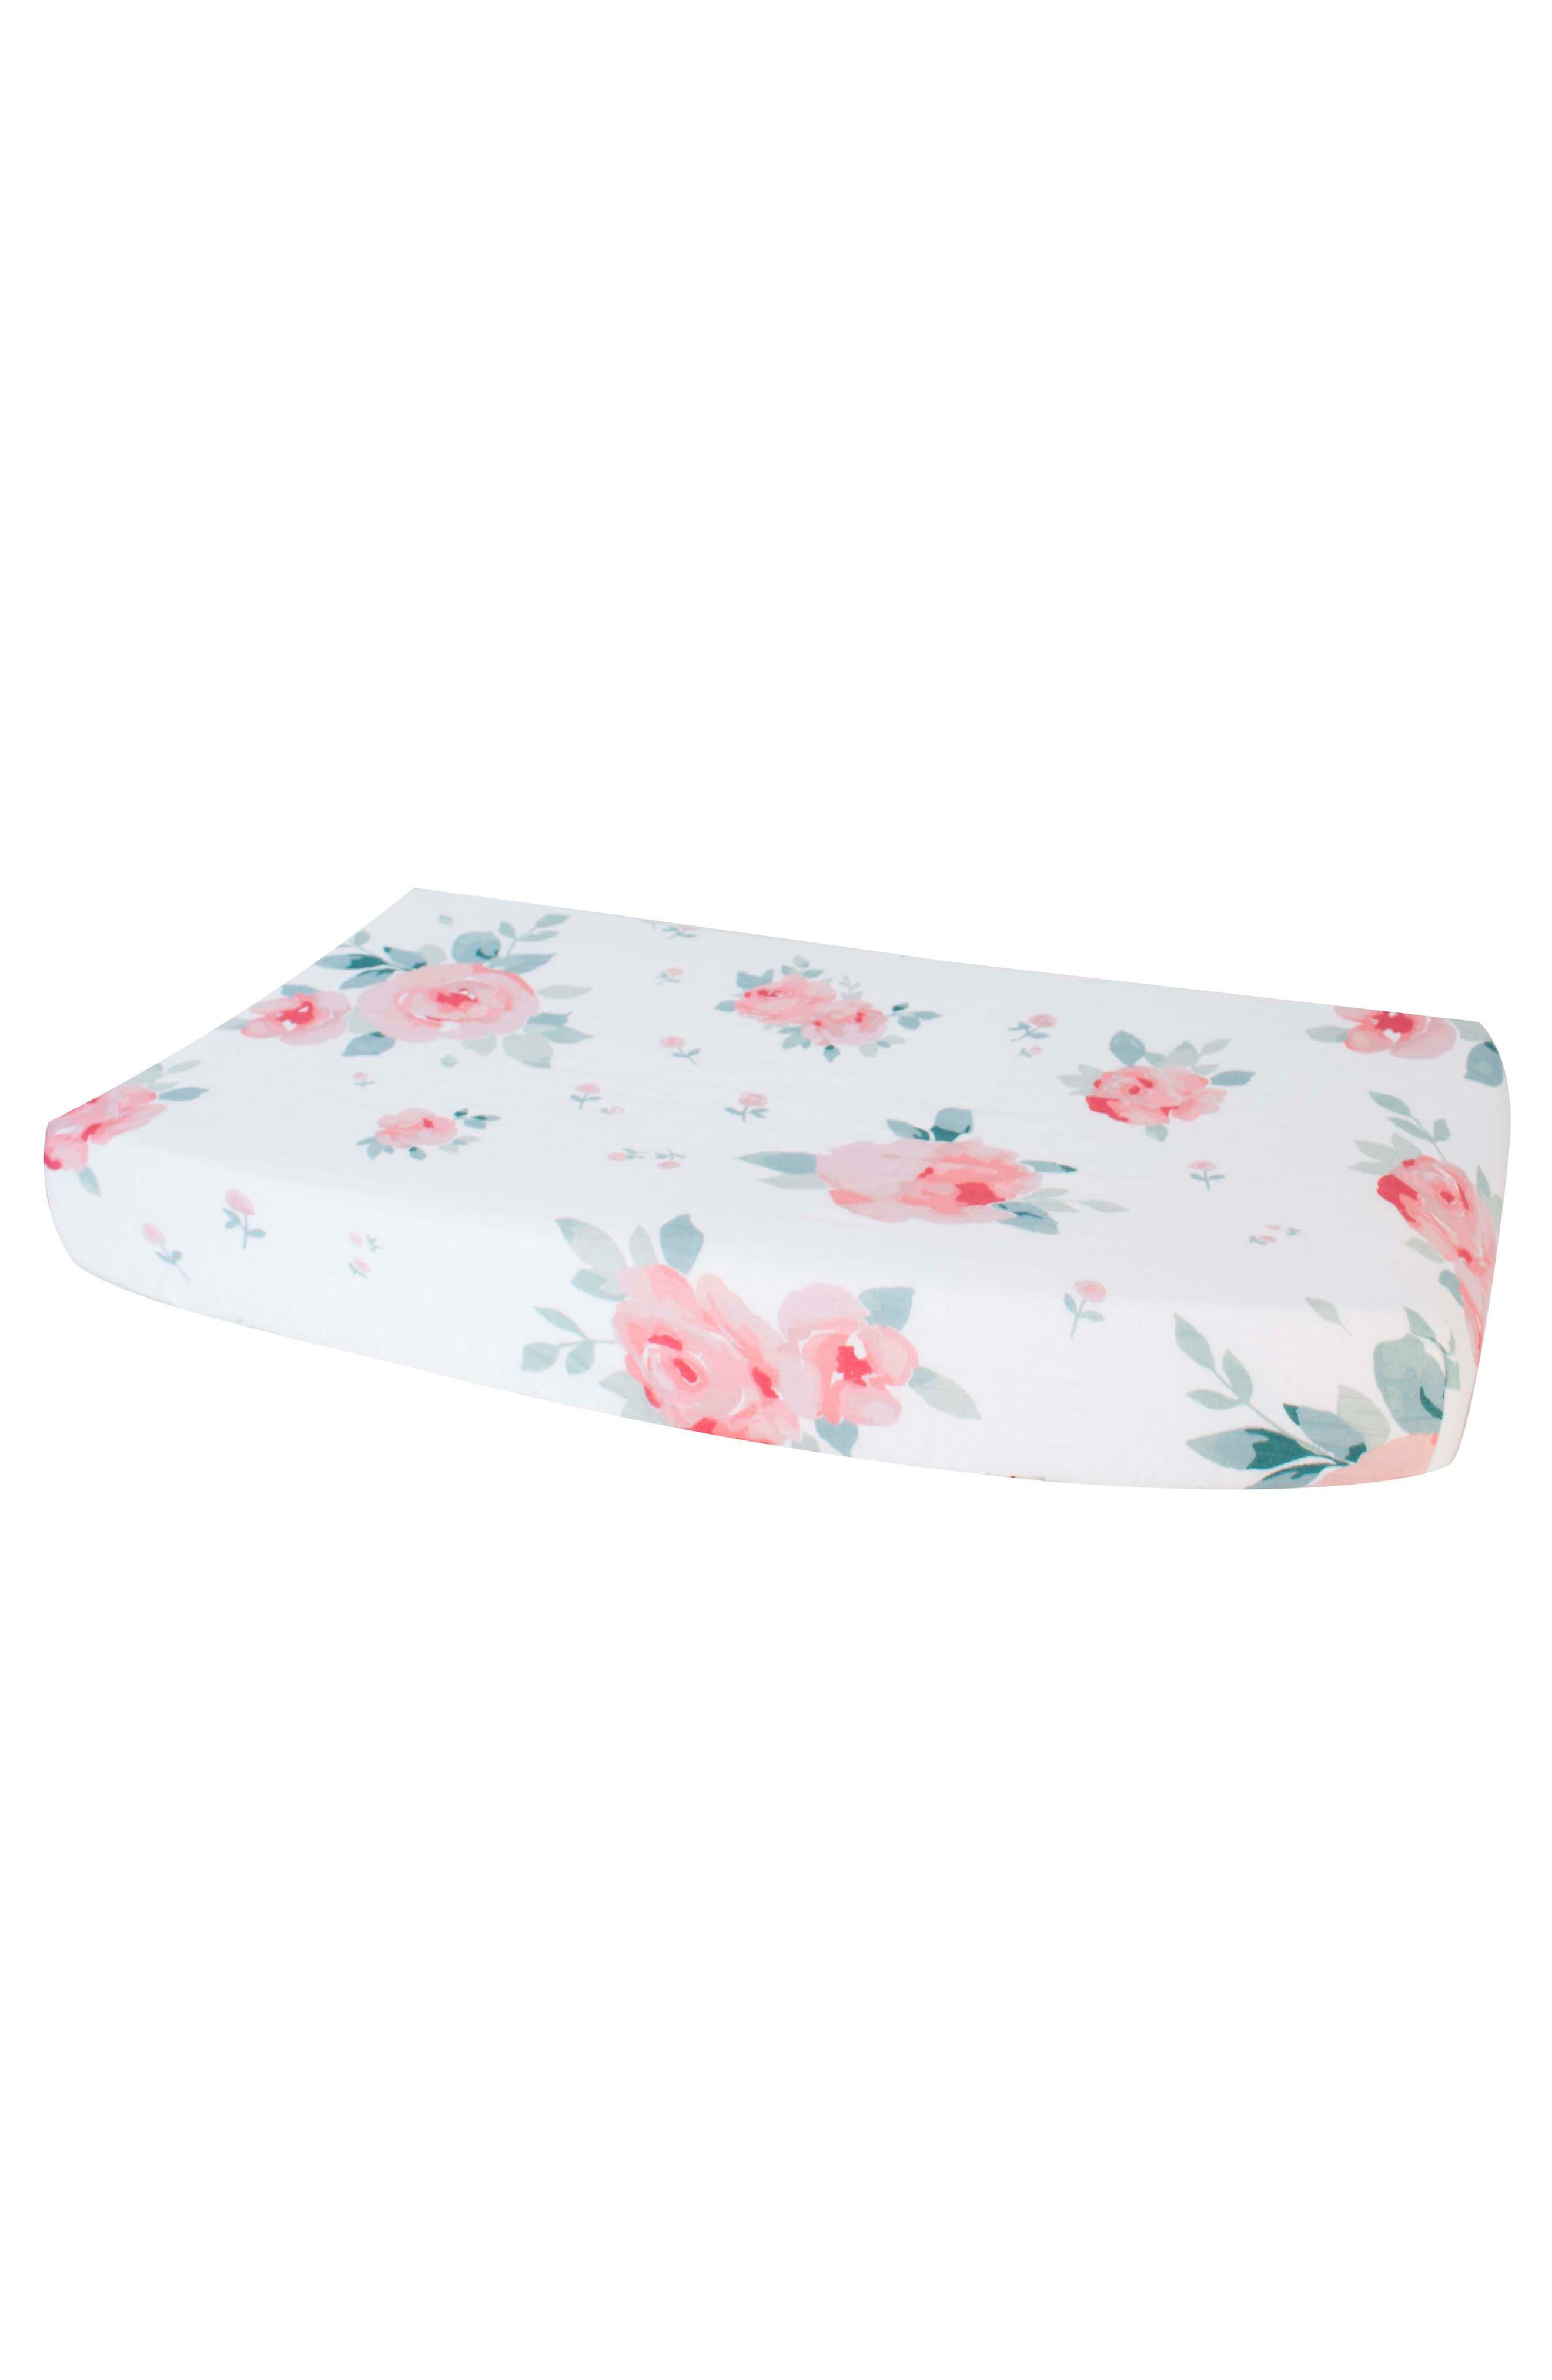 Oh So Soft Muslin Changing Pad Cover,                             Main thumbnail 1, color,                             ROSY